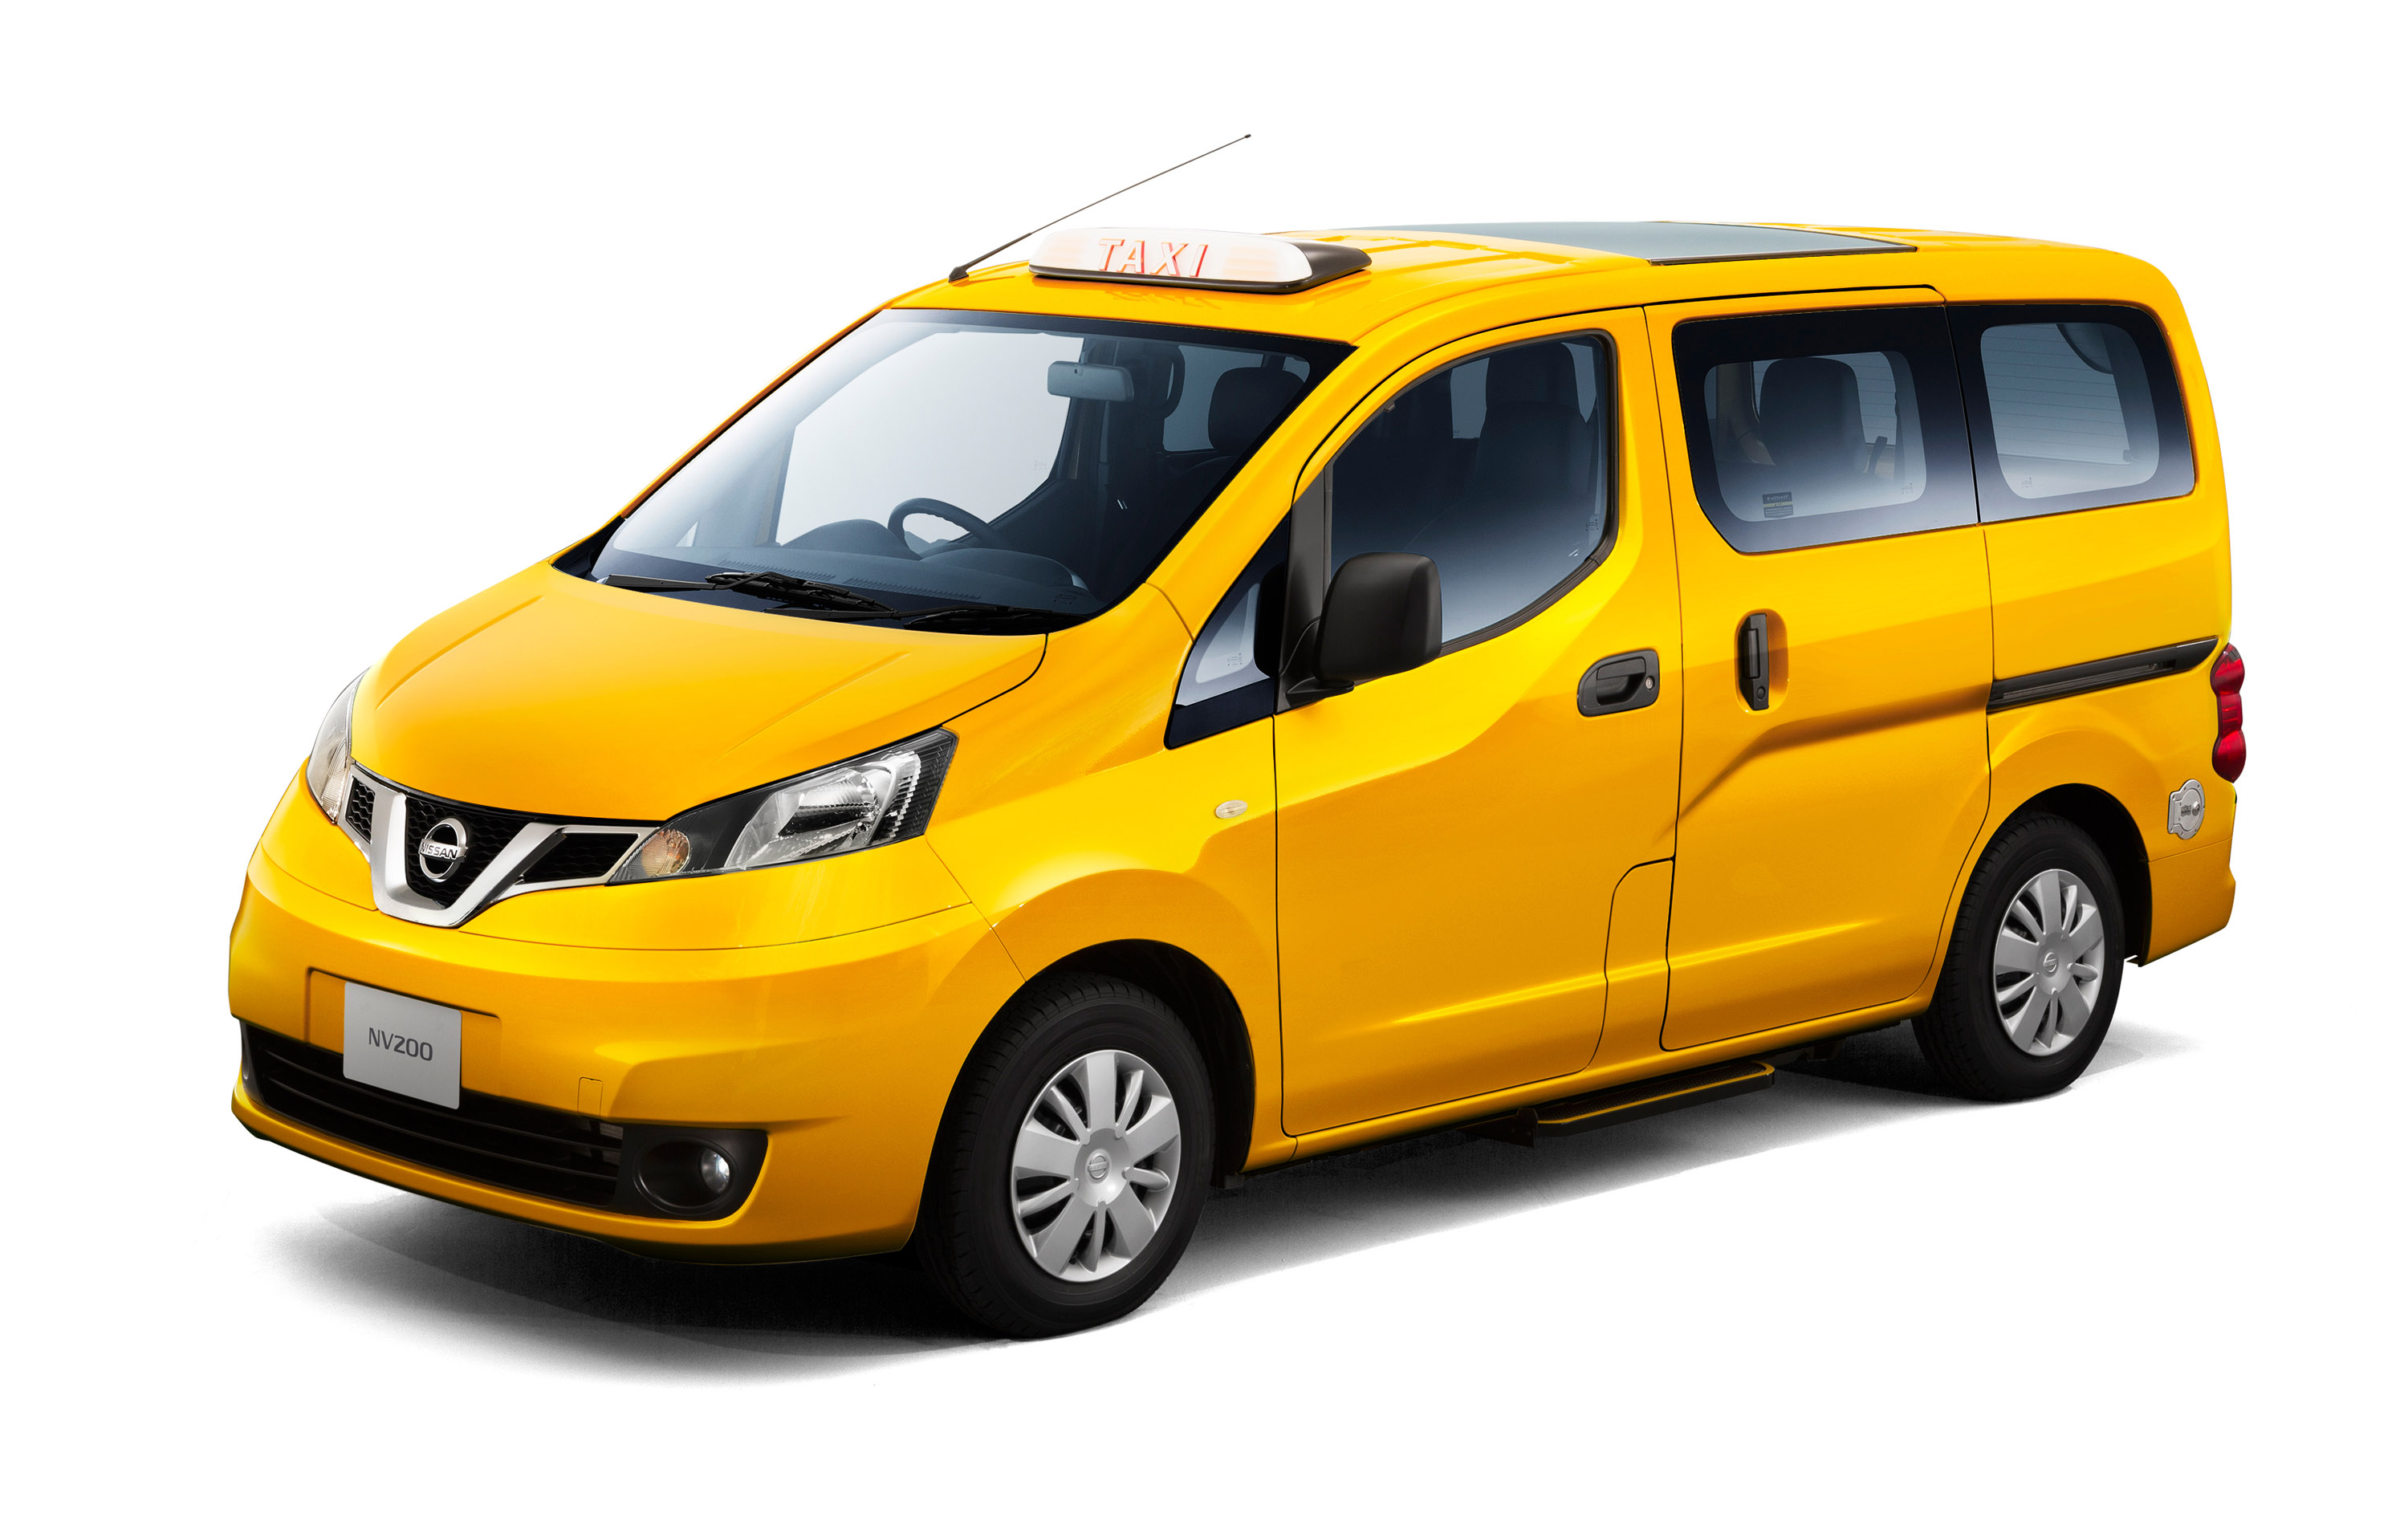 Nissan Nv Review >> Nissan Introduces its New Generation NV200 Taxi in Japan